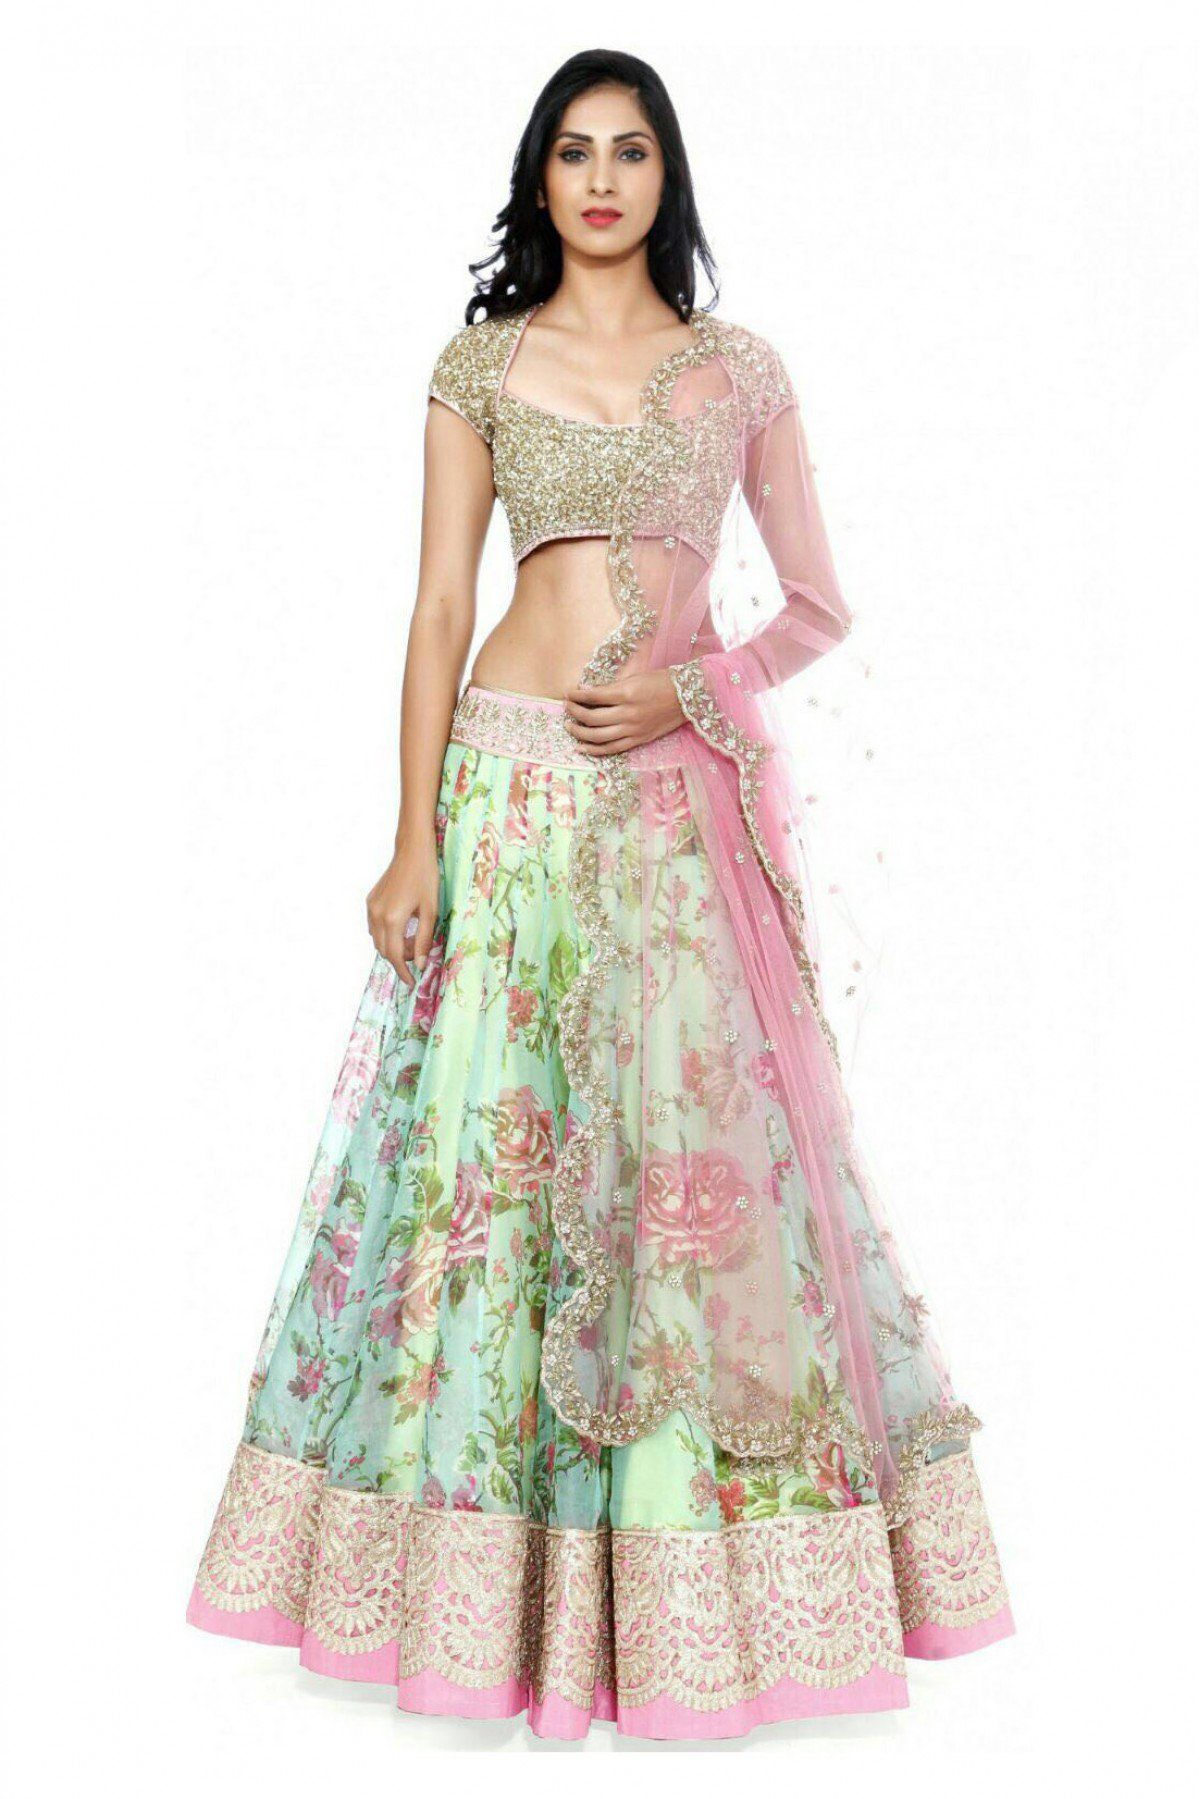 60affbe961 Buy Georgette Party Wear Lehenga Choli in Sea Green Colour for women @  ninecolours.com. Cash on Delivery Available!